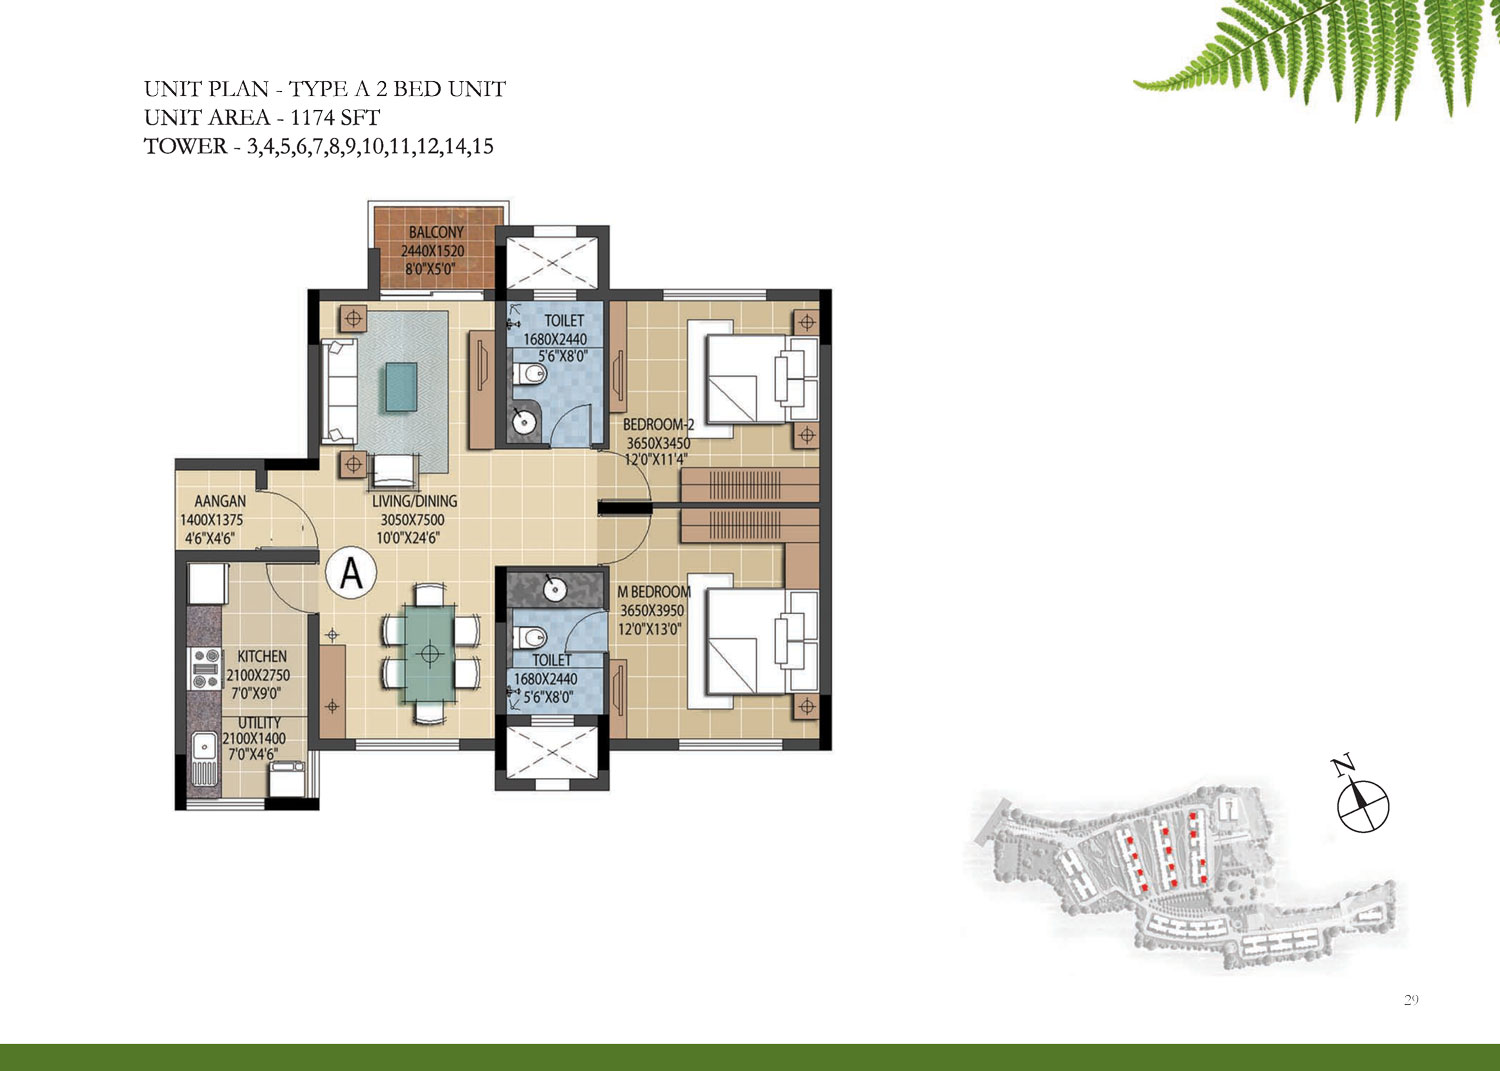 Type A - 2 Bed - 1174 Sq Ft